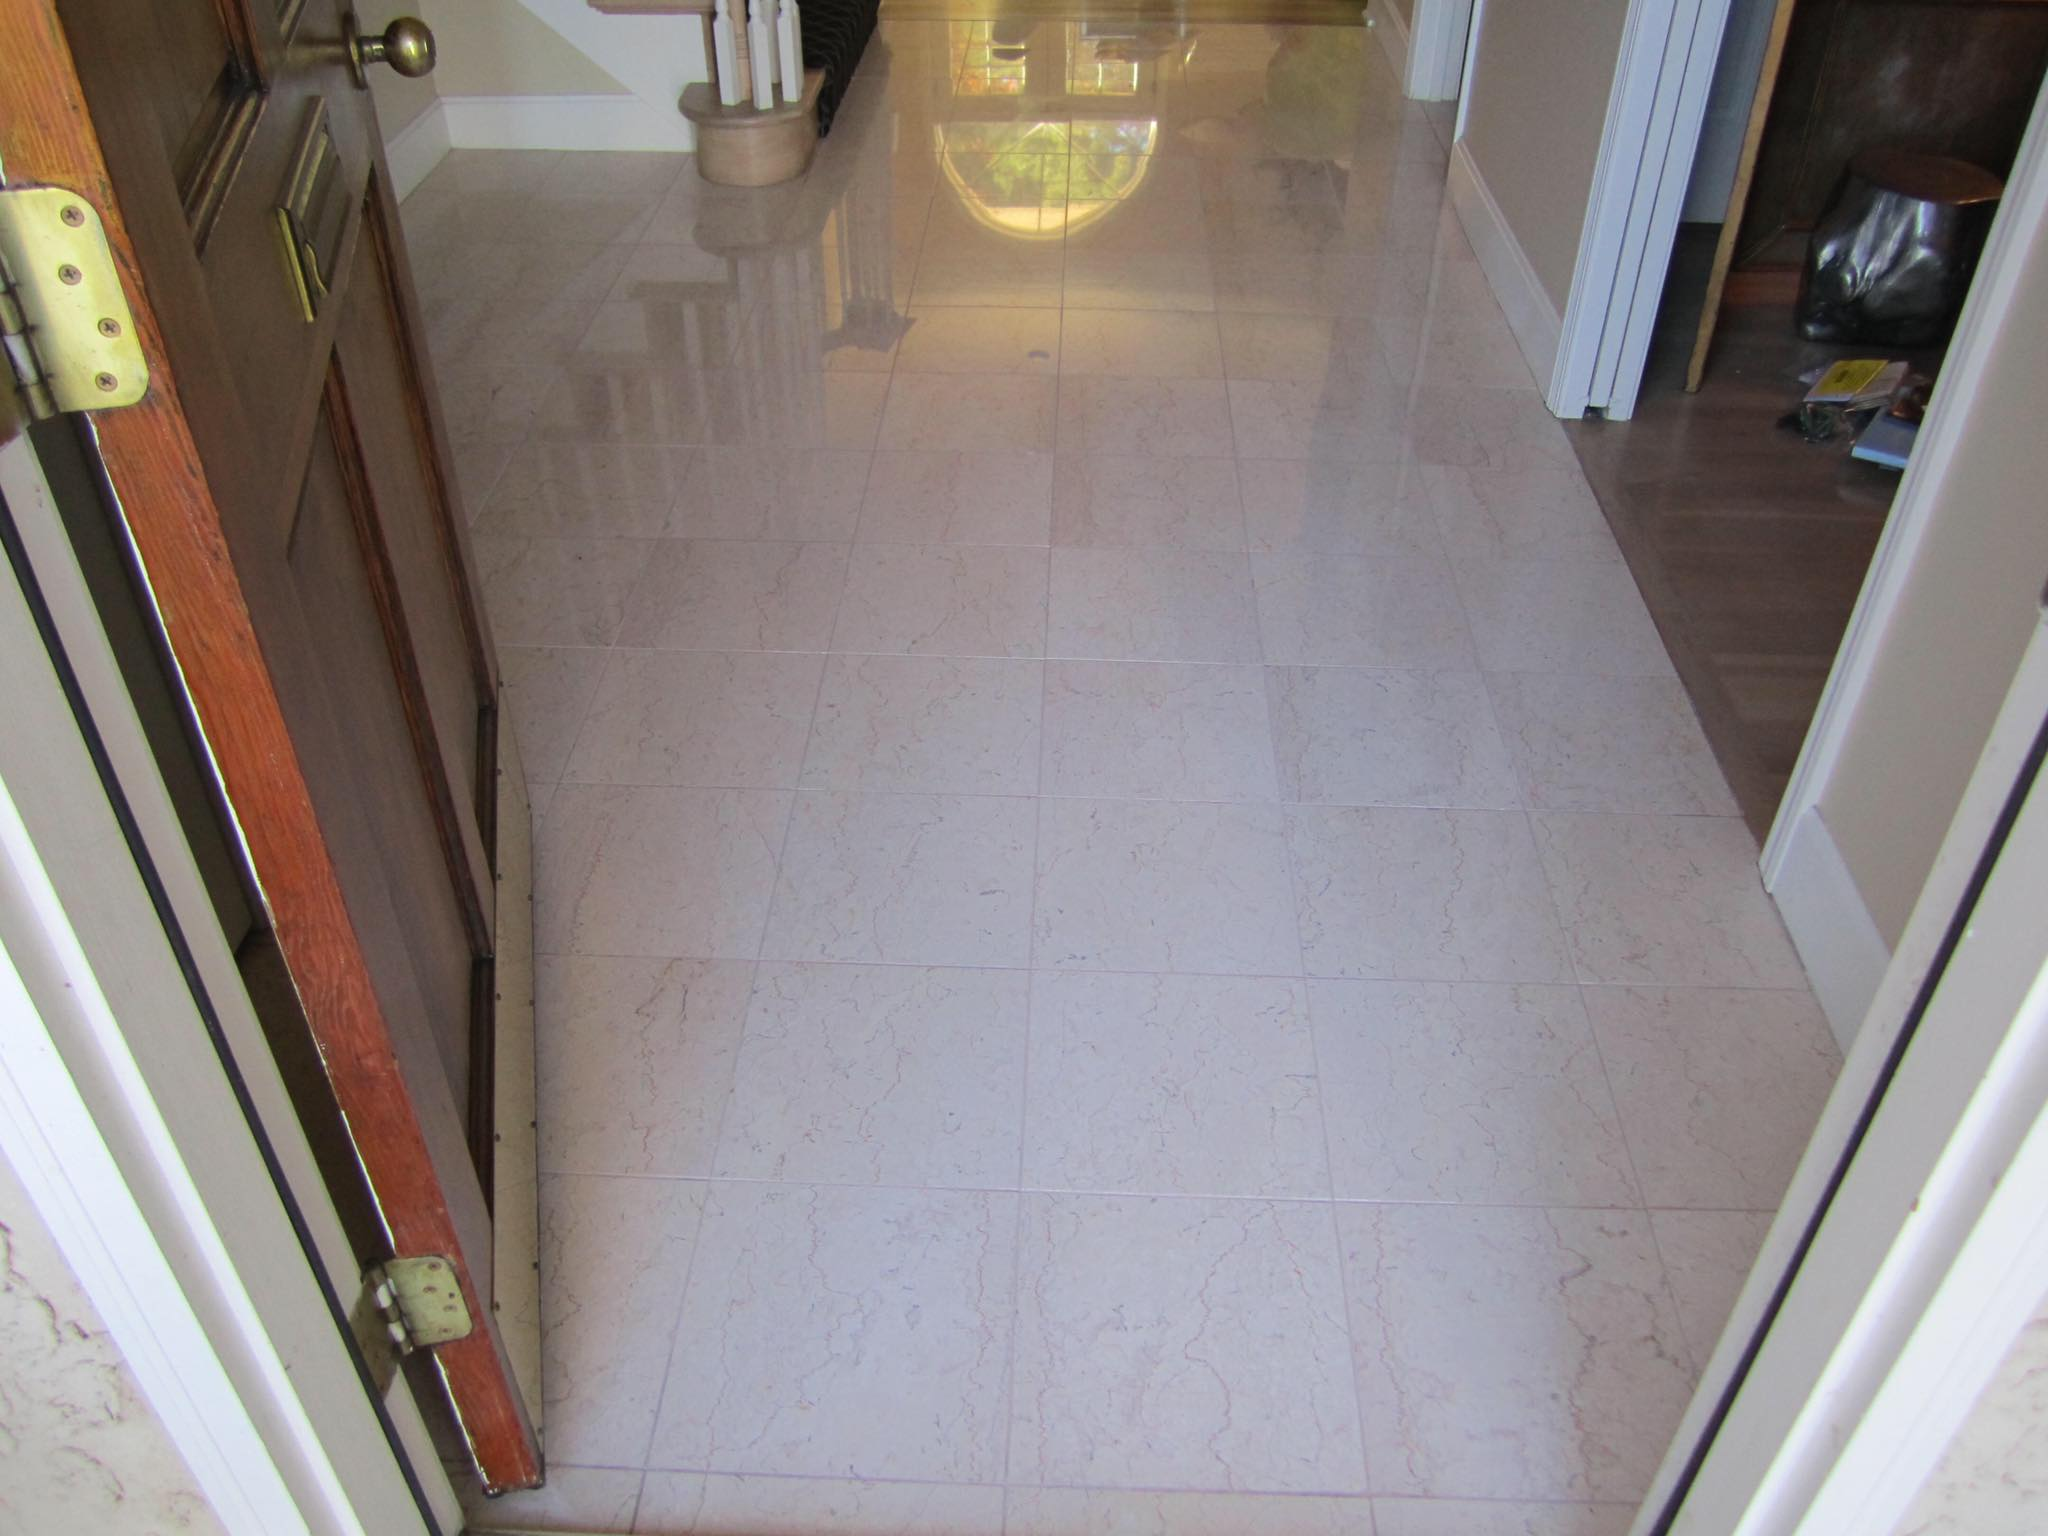 Tile and grout after being cleaned by HYPER